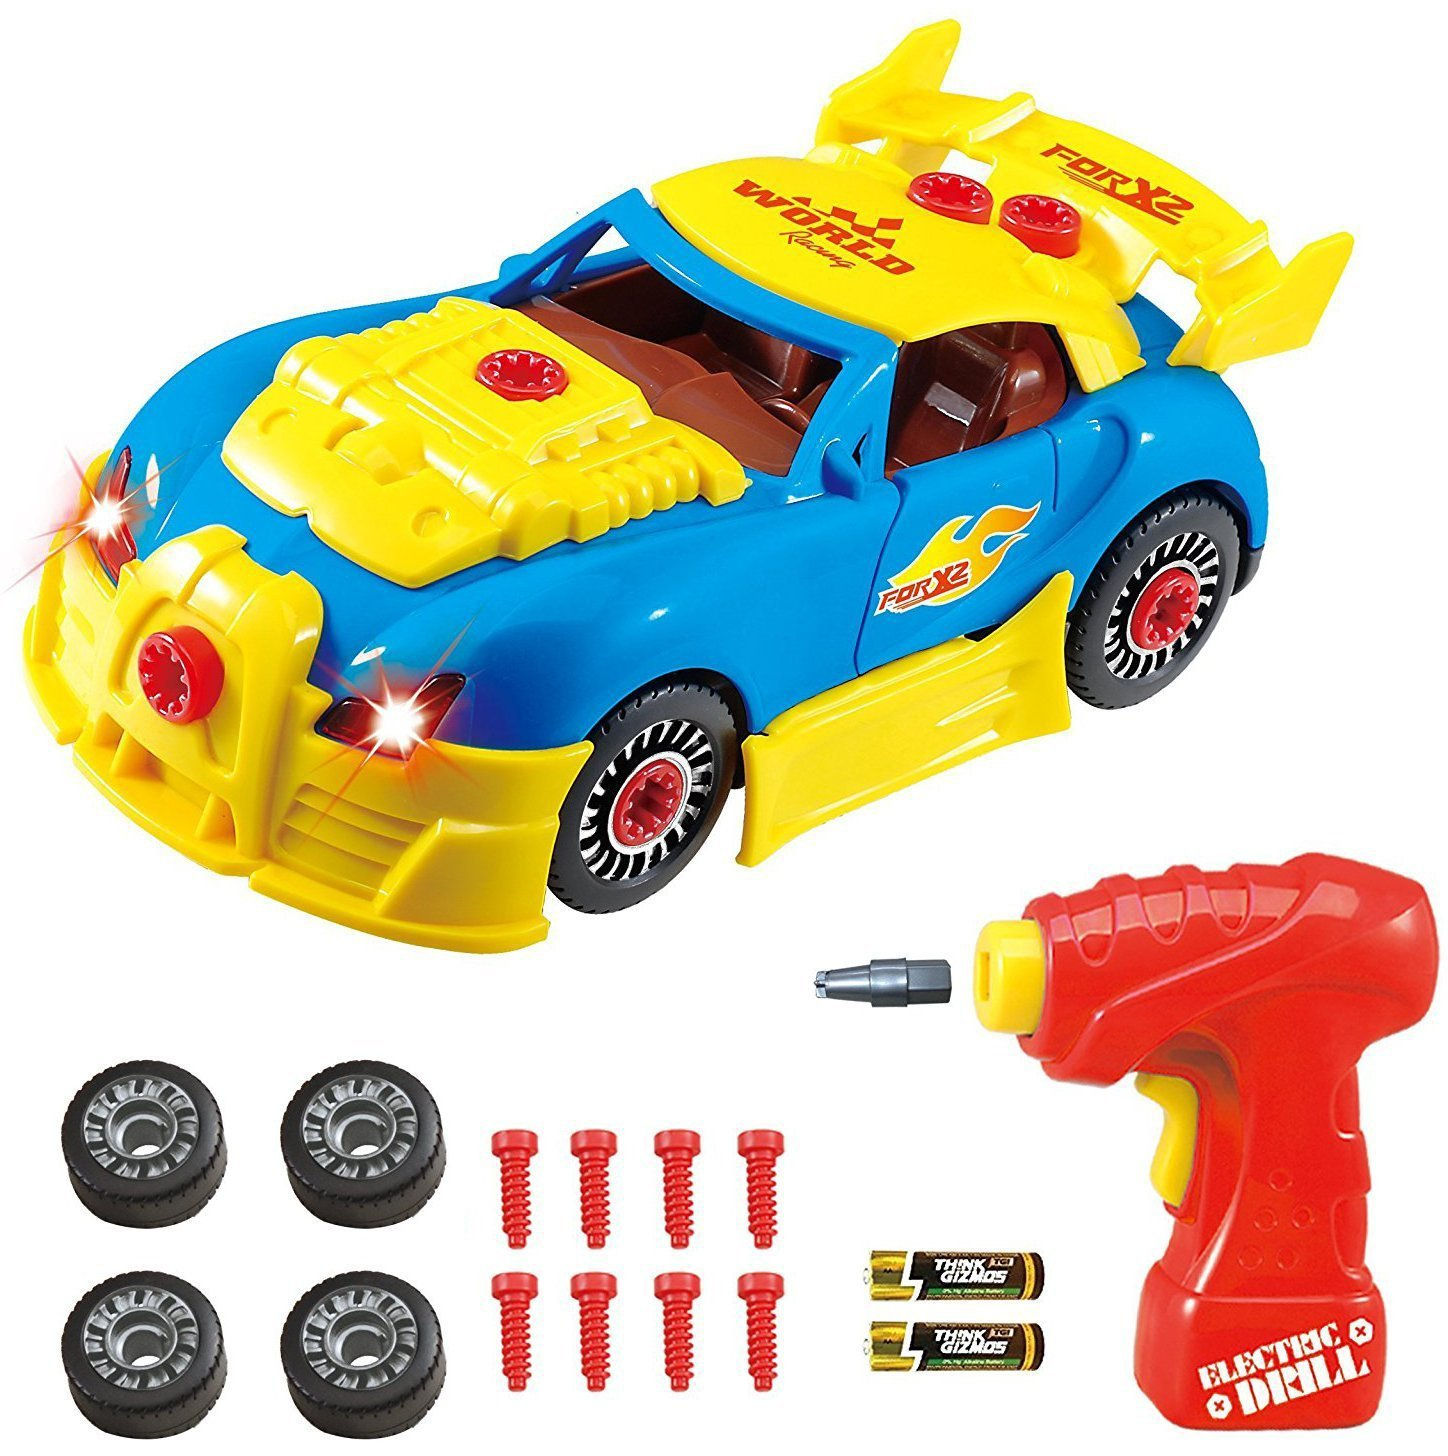 Think Gizmos Take Apart Toy Racing Car - Construction Toy Kit for Boys and Girls Aged 3 4 5 6 7 8 - Build Your Own Car Kit Updated Version 3 Exclusive to by Think Gizmos